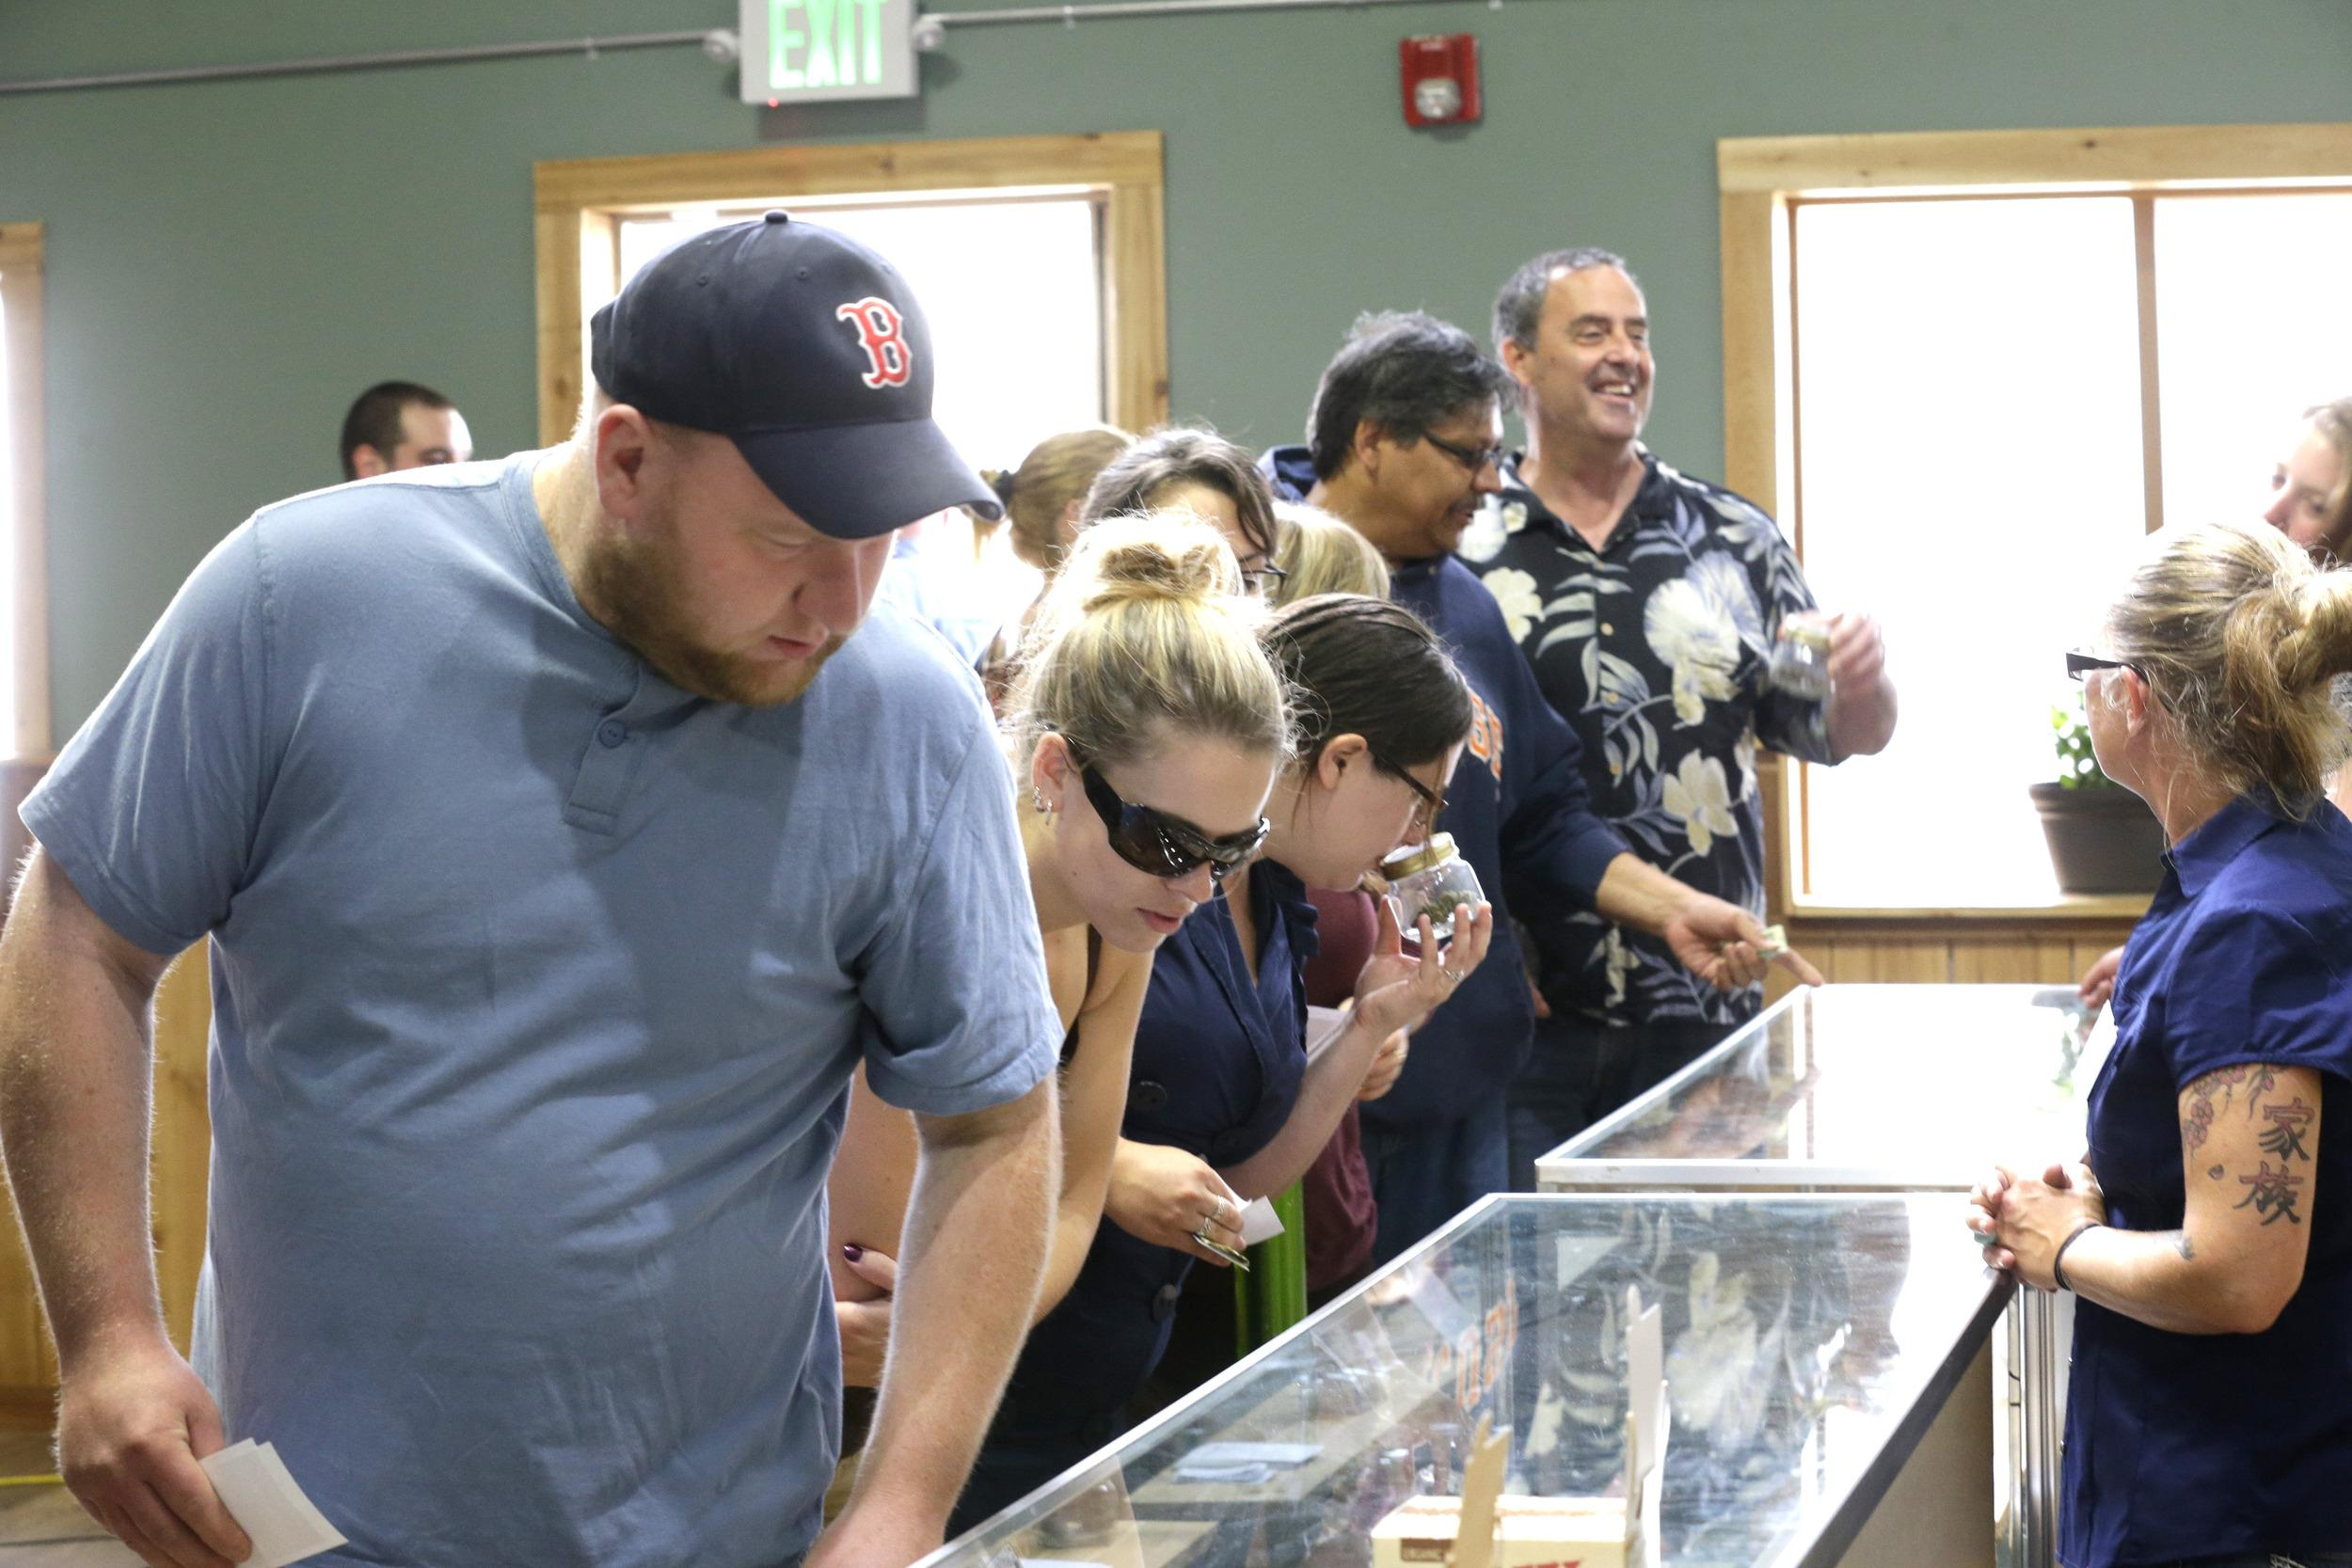 Image: The first day of legal recreational marijuana sales in Washington state.